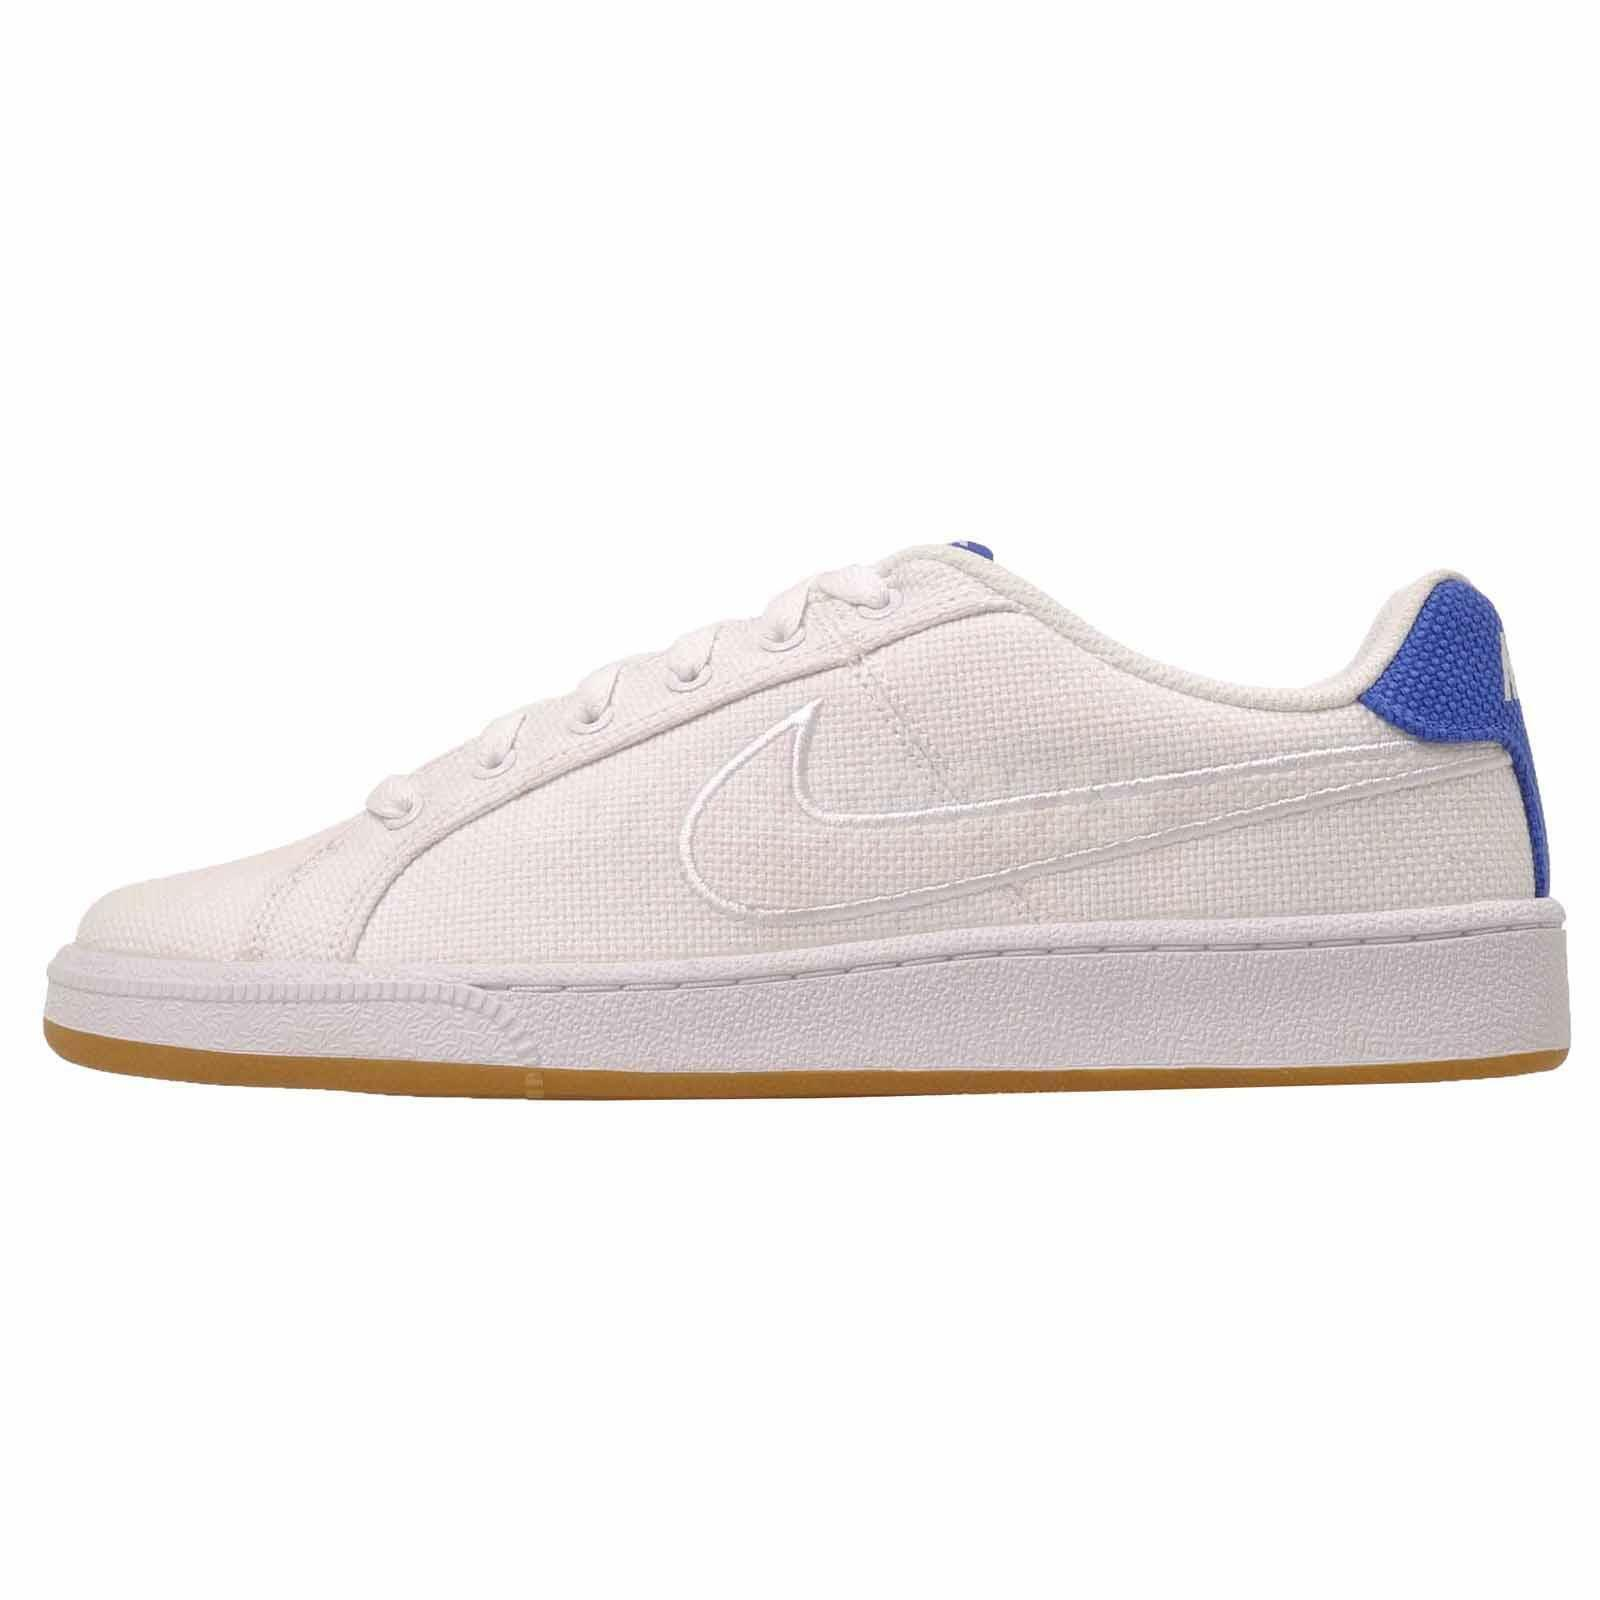 Nike Court Royale Prem Casual Uomo Shoes White Blue 805556-101